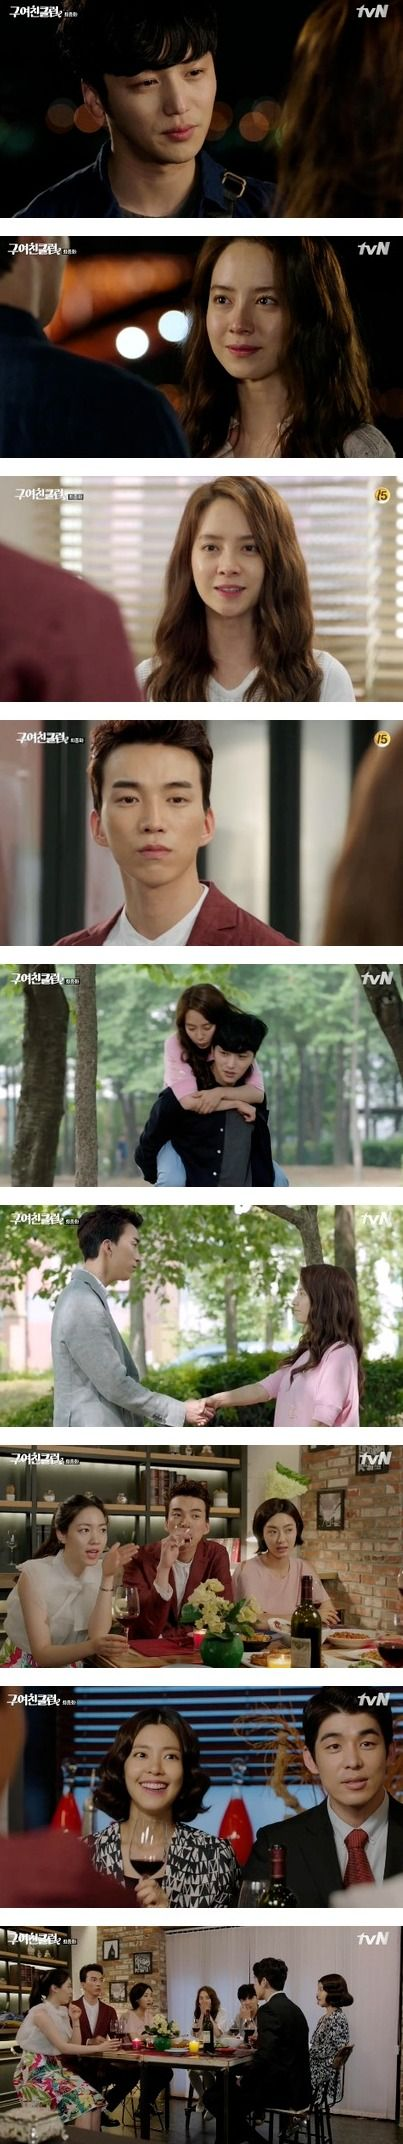 [Spoiler] Added episodes 11 and 12 captures for the Korean drama 'Ex-Girlfriends' Club' @ HanCinema :: The Korean Movie and Drama Database